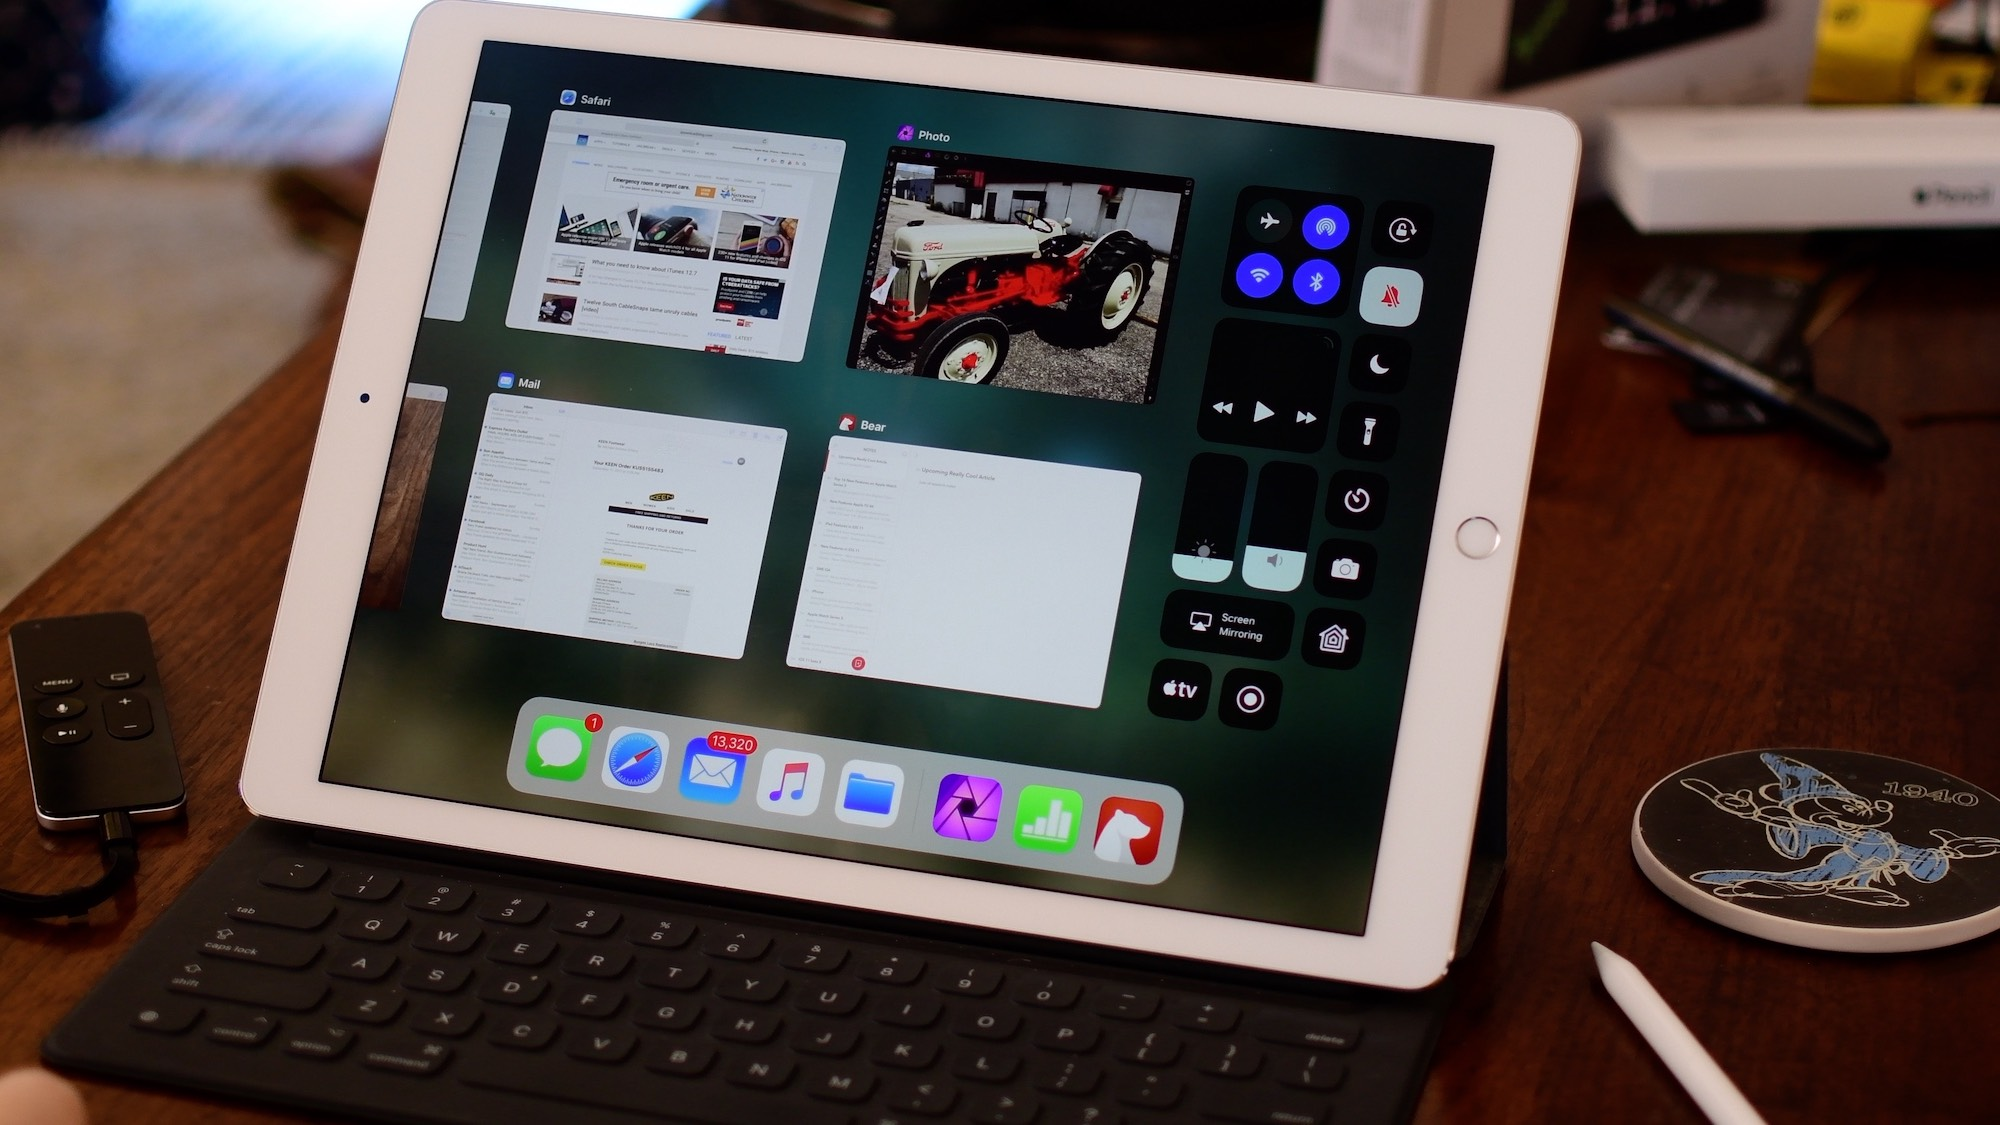 iOS 13's iPad features: tabs in apps, same app Split View, Apple